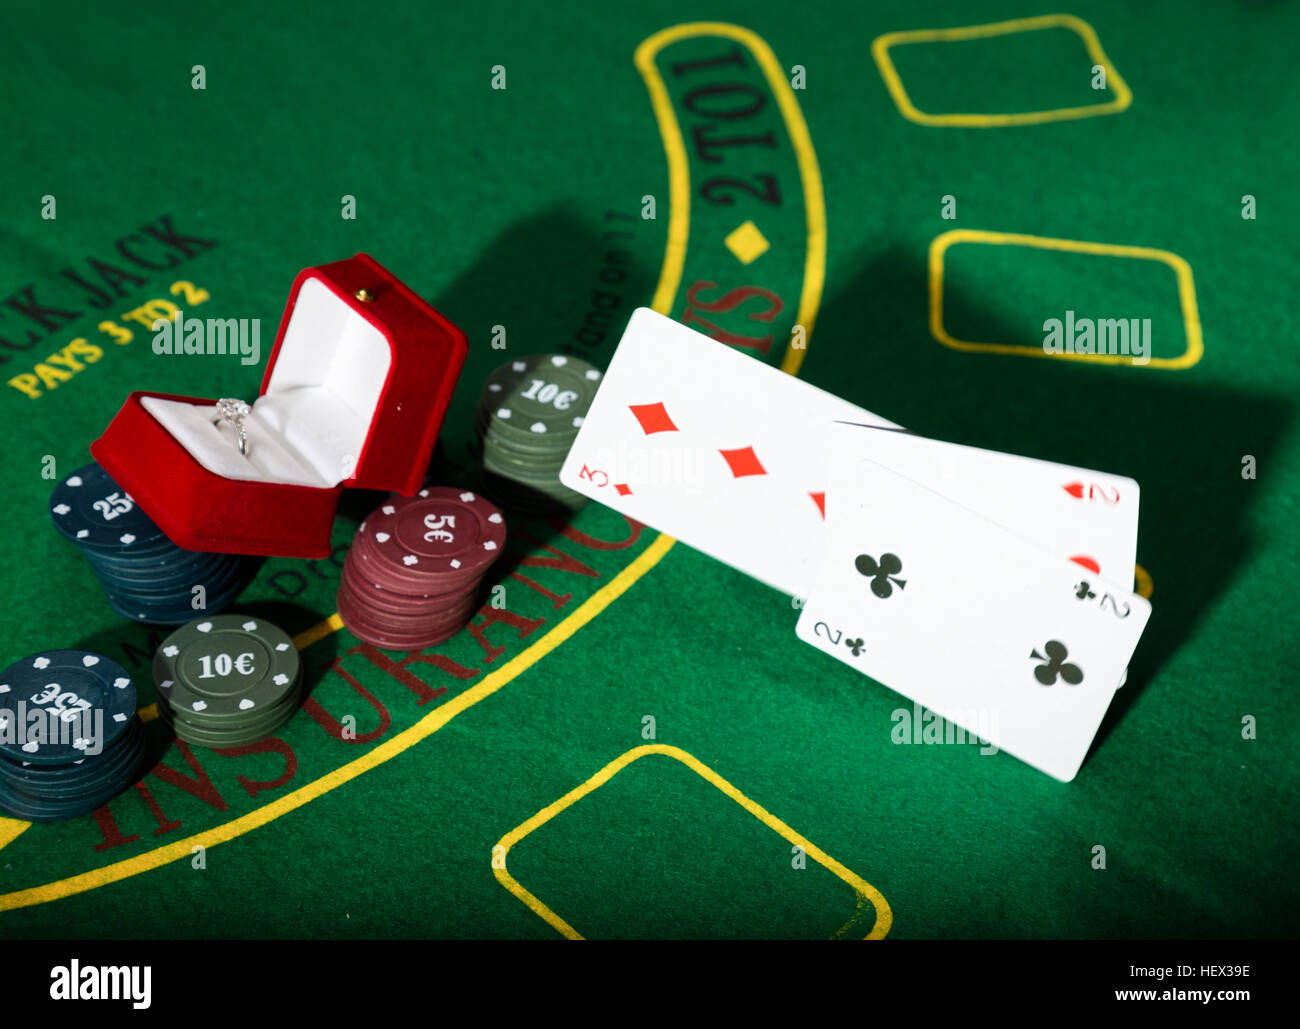 Poker table background - Stock Photo Casino Chips And A Precious Ring On Green Poker Table Background Man Throws Cards With Losing Combination